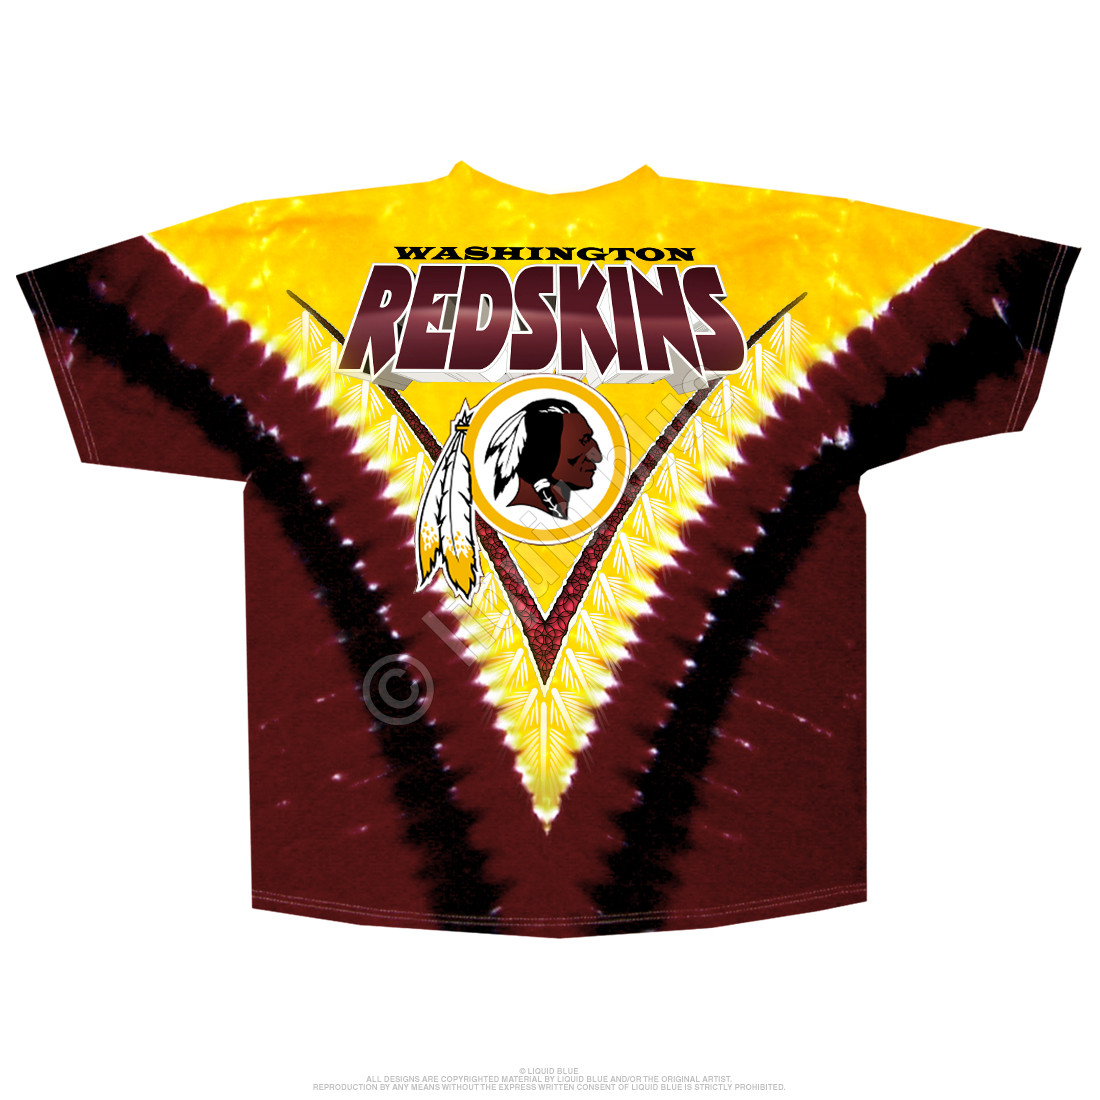 Washington Football Team V Tie-Dye T-Shirt